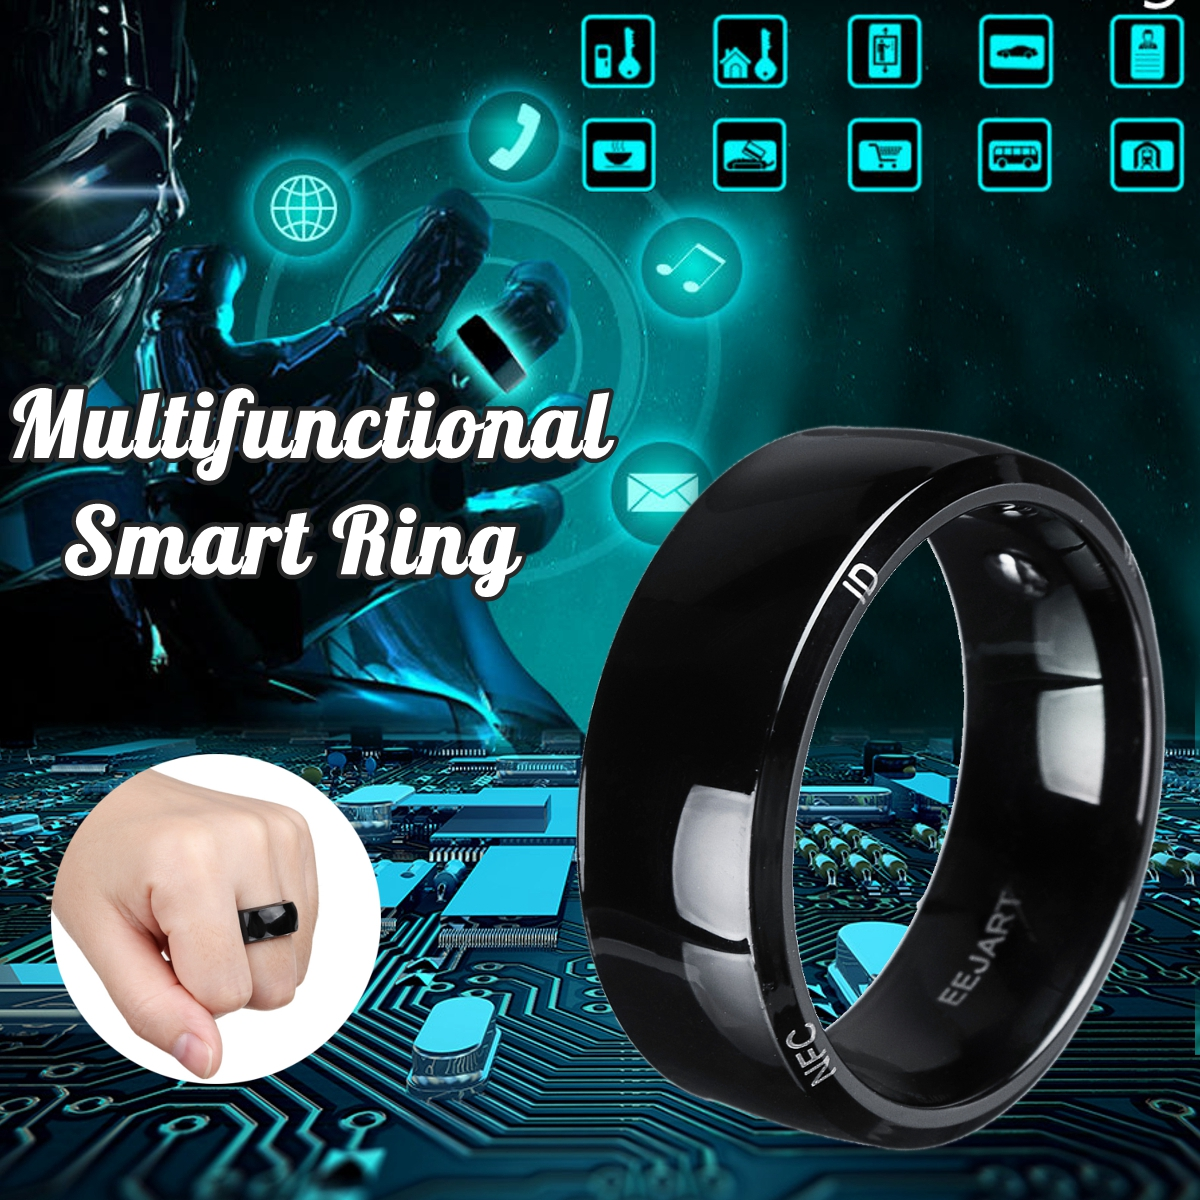 Waterproof Unlock Health Protection Smart Ring Wear New technology Magic Finger NFC Ring For Android Windows NFC Mobile PhoneWaterproof Unlock Health Protection Smart Ring Wear New technology Magic Finger NFC Ring For Android Windows NFC Mobile Phone